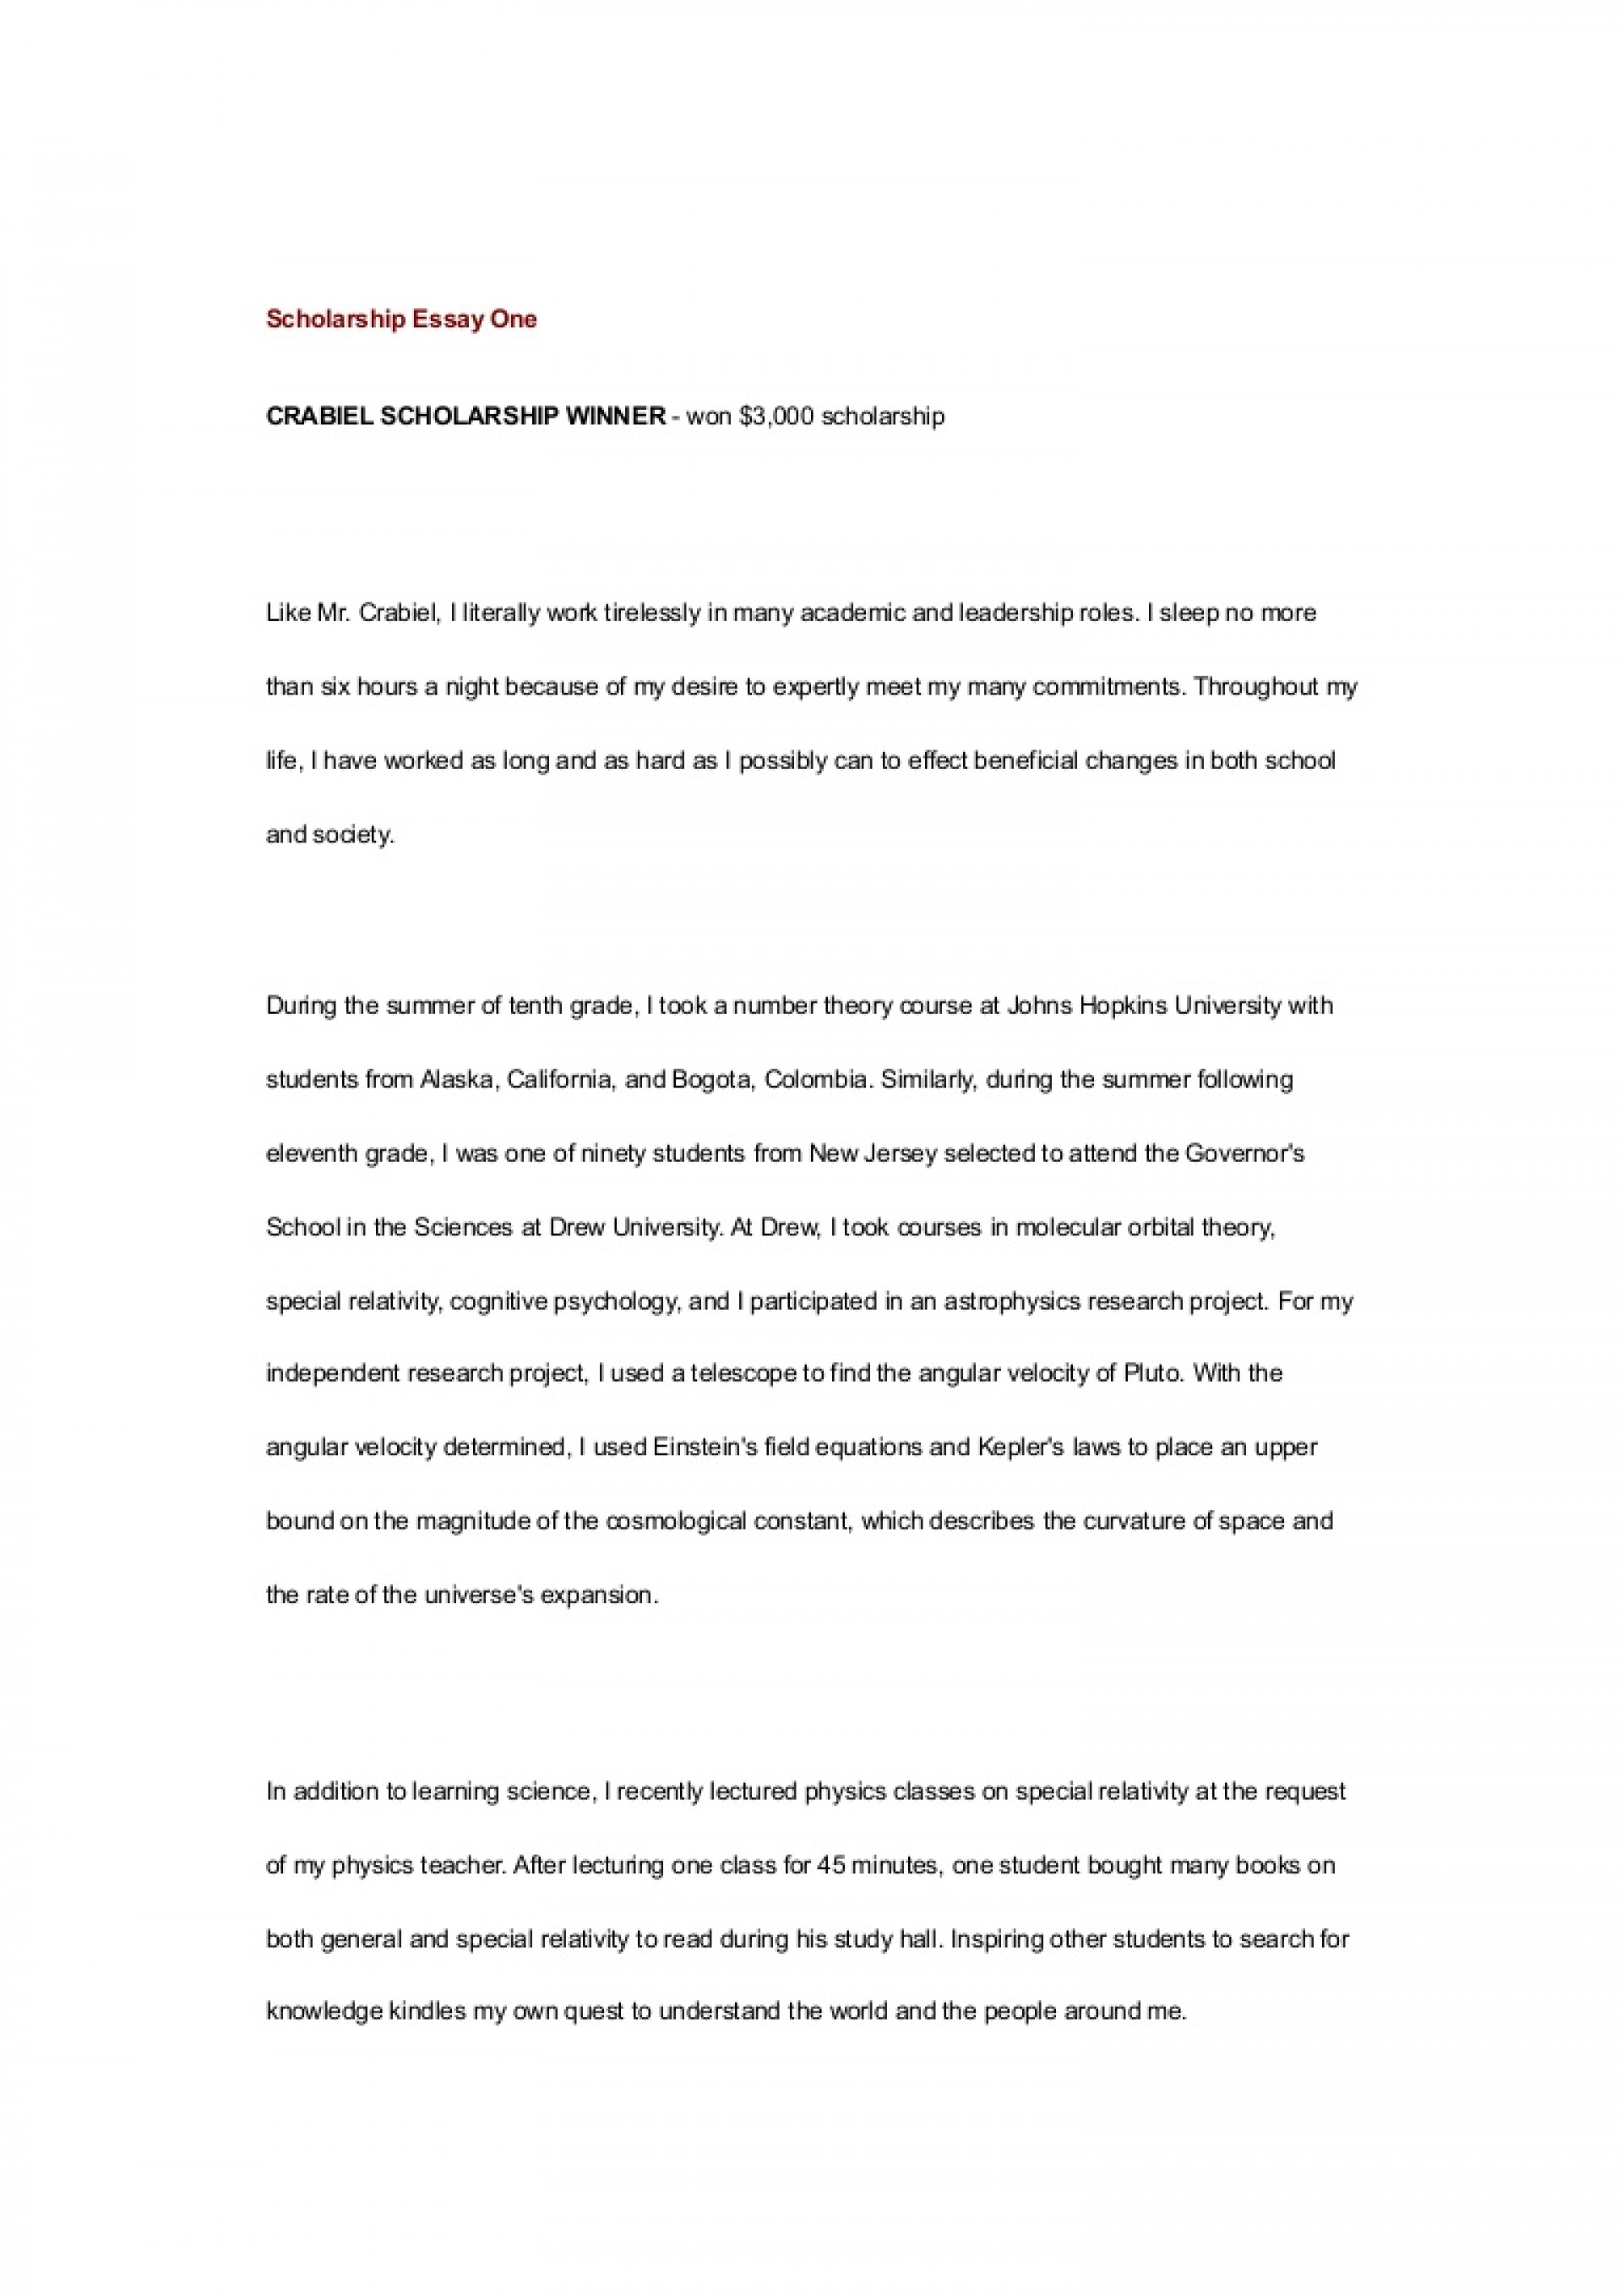 005 Examples Of Scholarship Essays On Financial Need Essay Example Scholarshipessayone Phpapp01 Thumbnail Best 1920